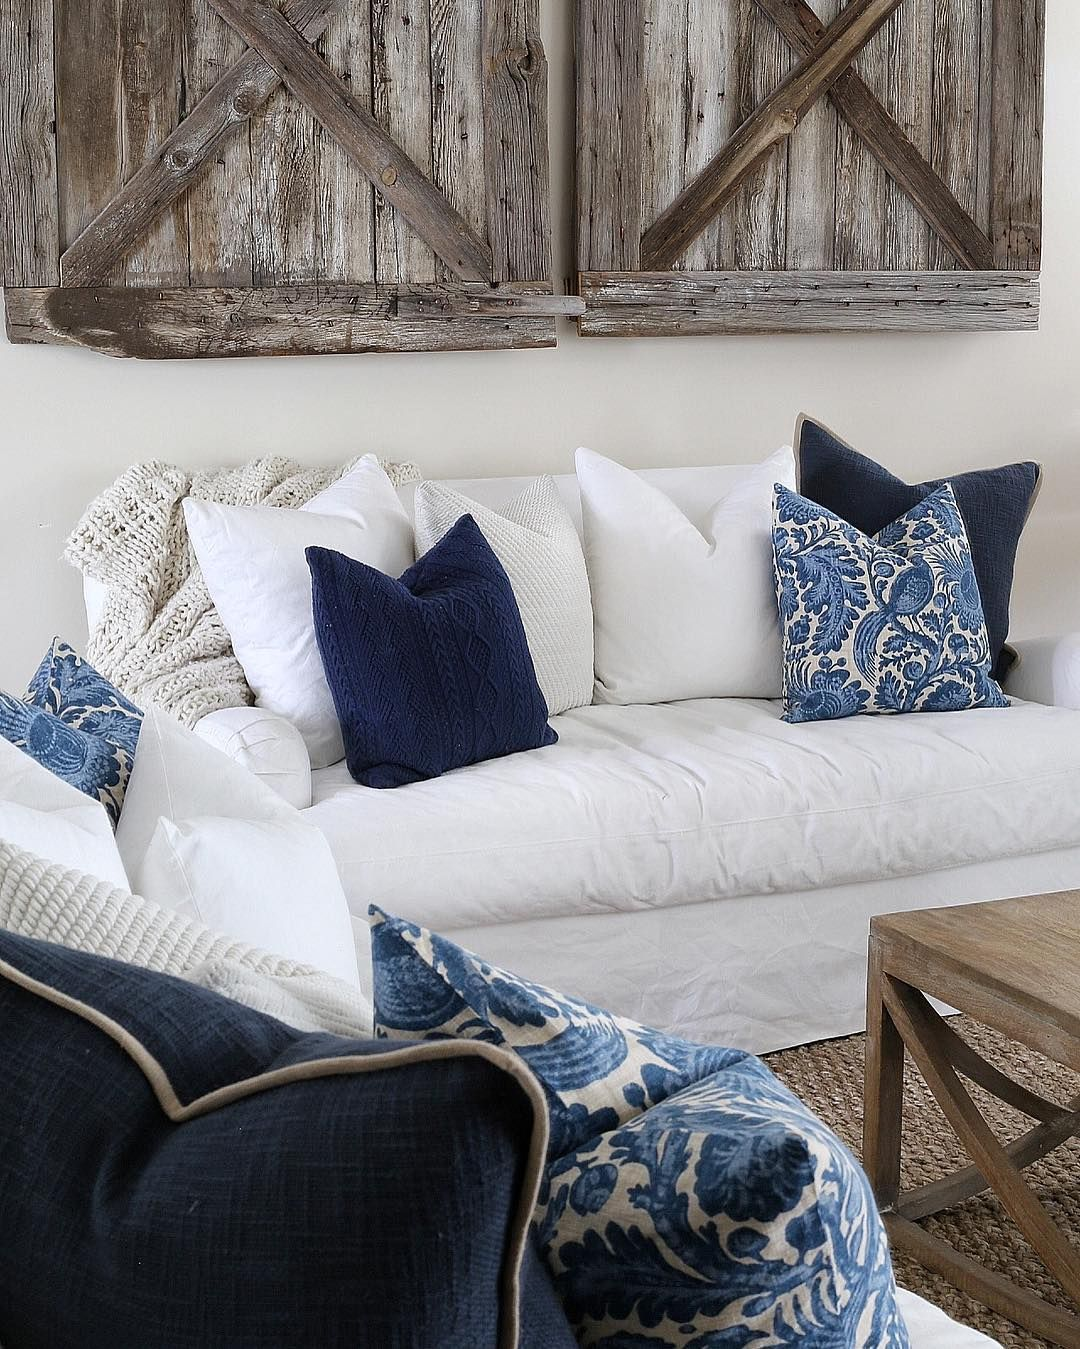 C H E L L Cambridgehomecompany Instagram Photos And Videos White Couch Living Room Farm House Living Room Blue Pillows